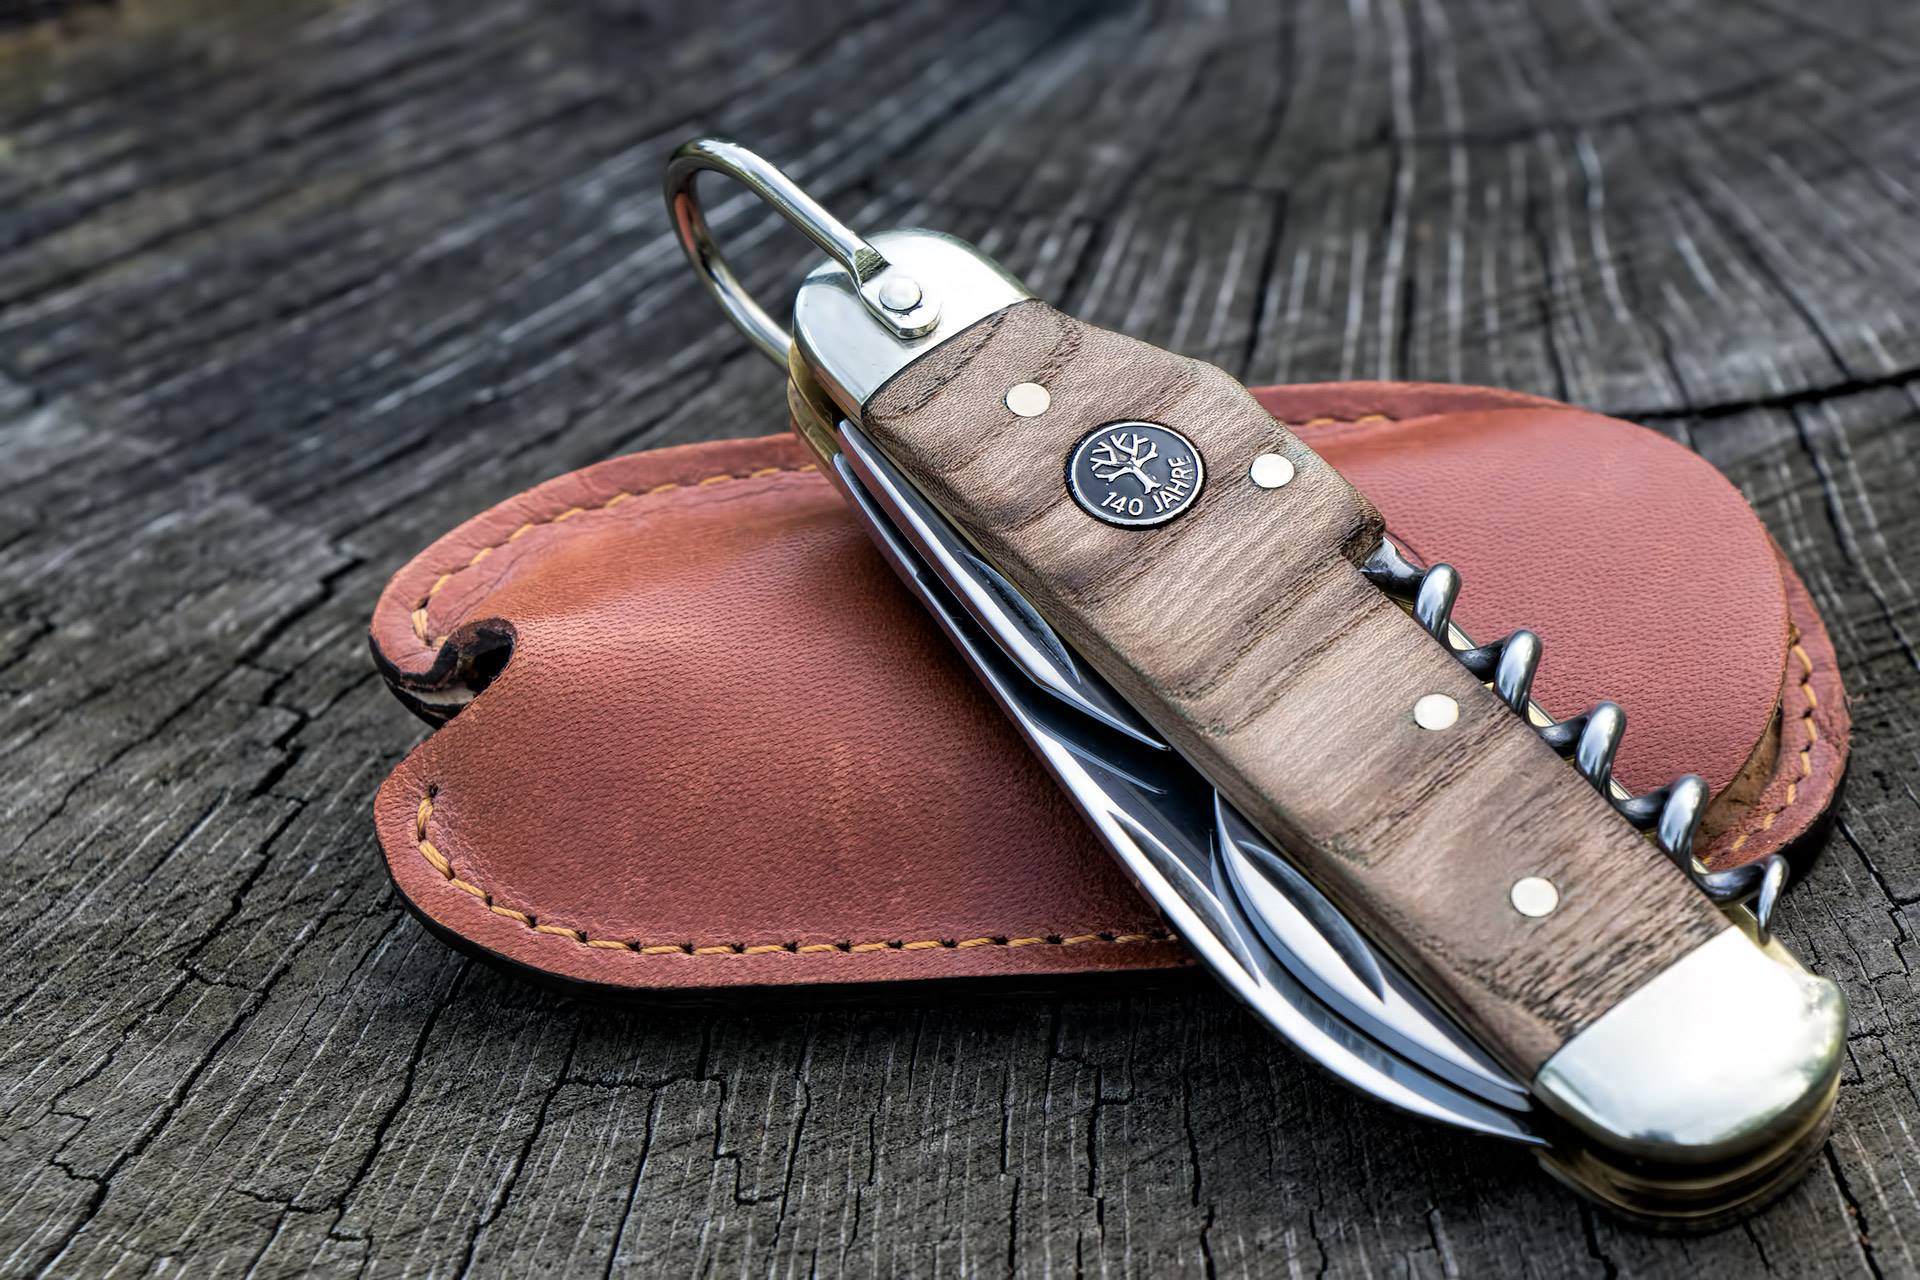 Boker Knives - History and Use - Gear For Life